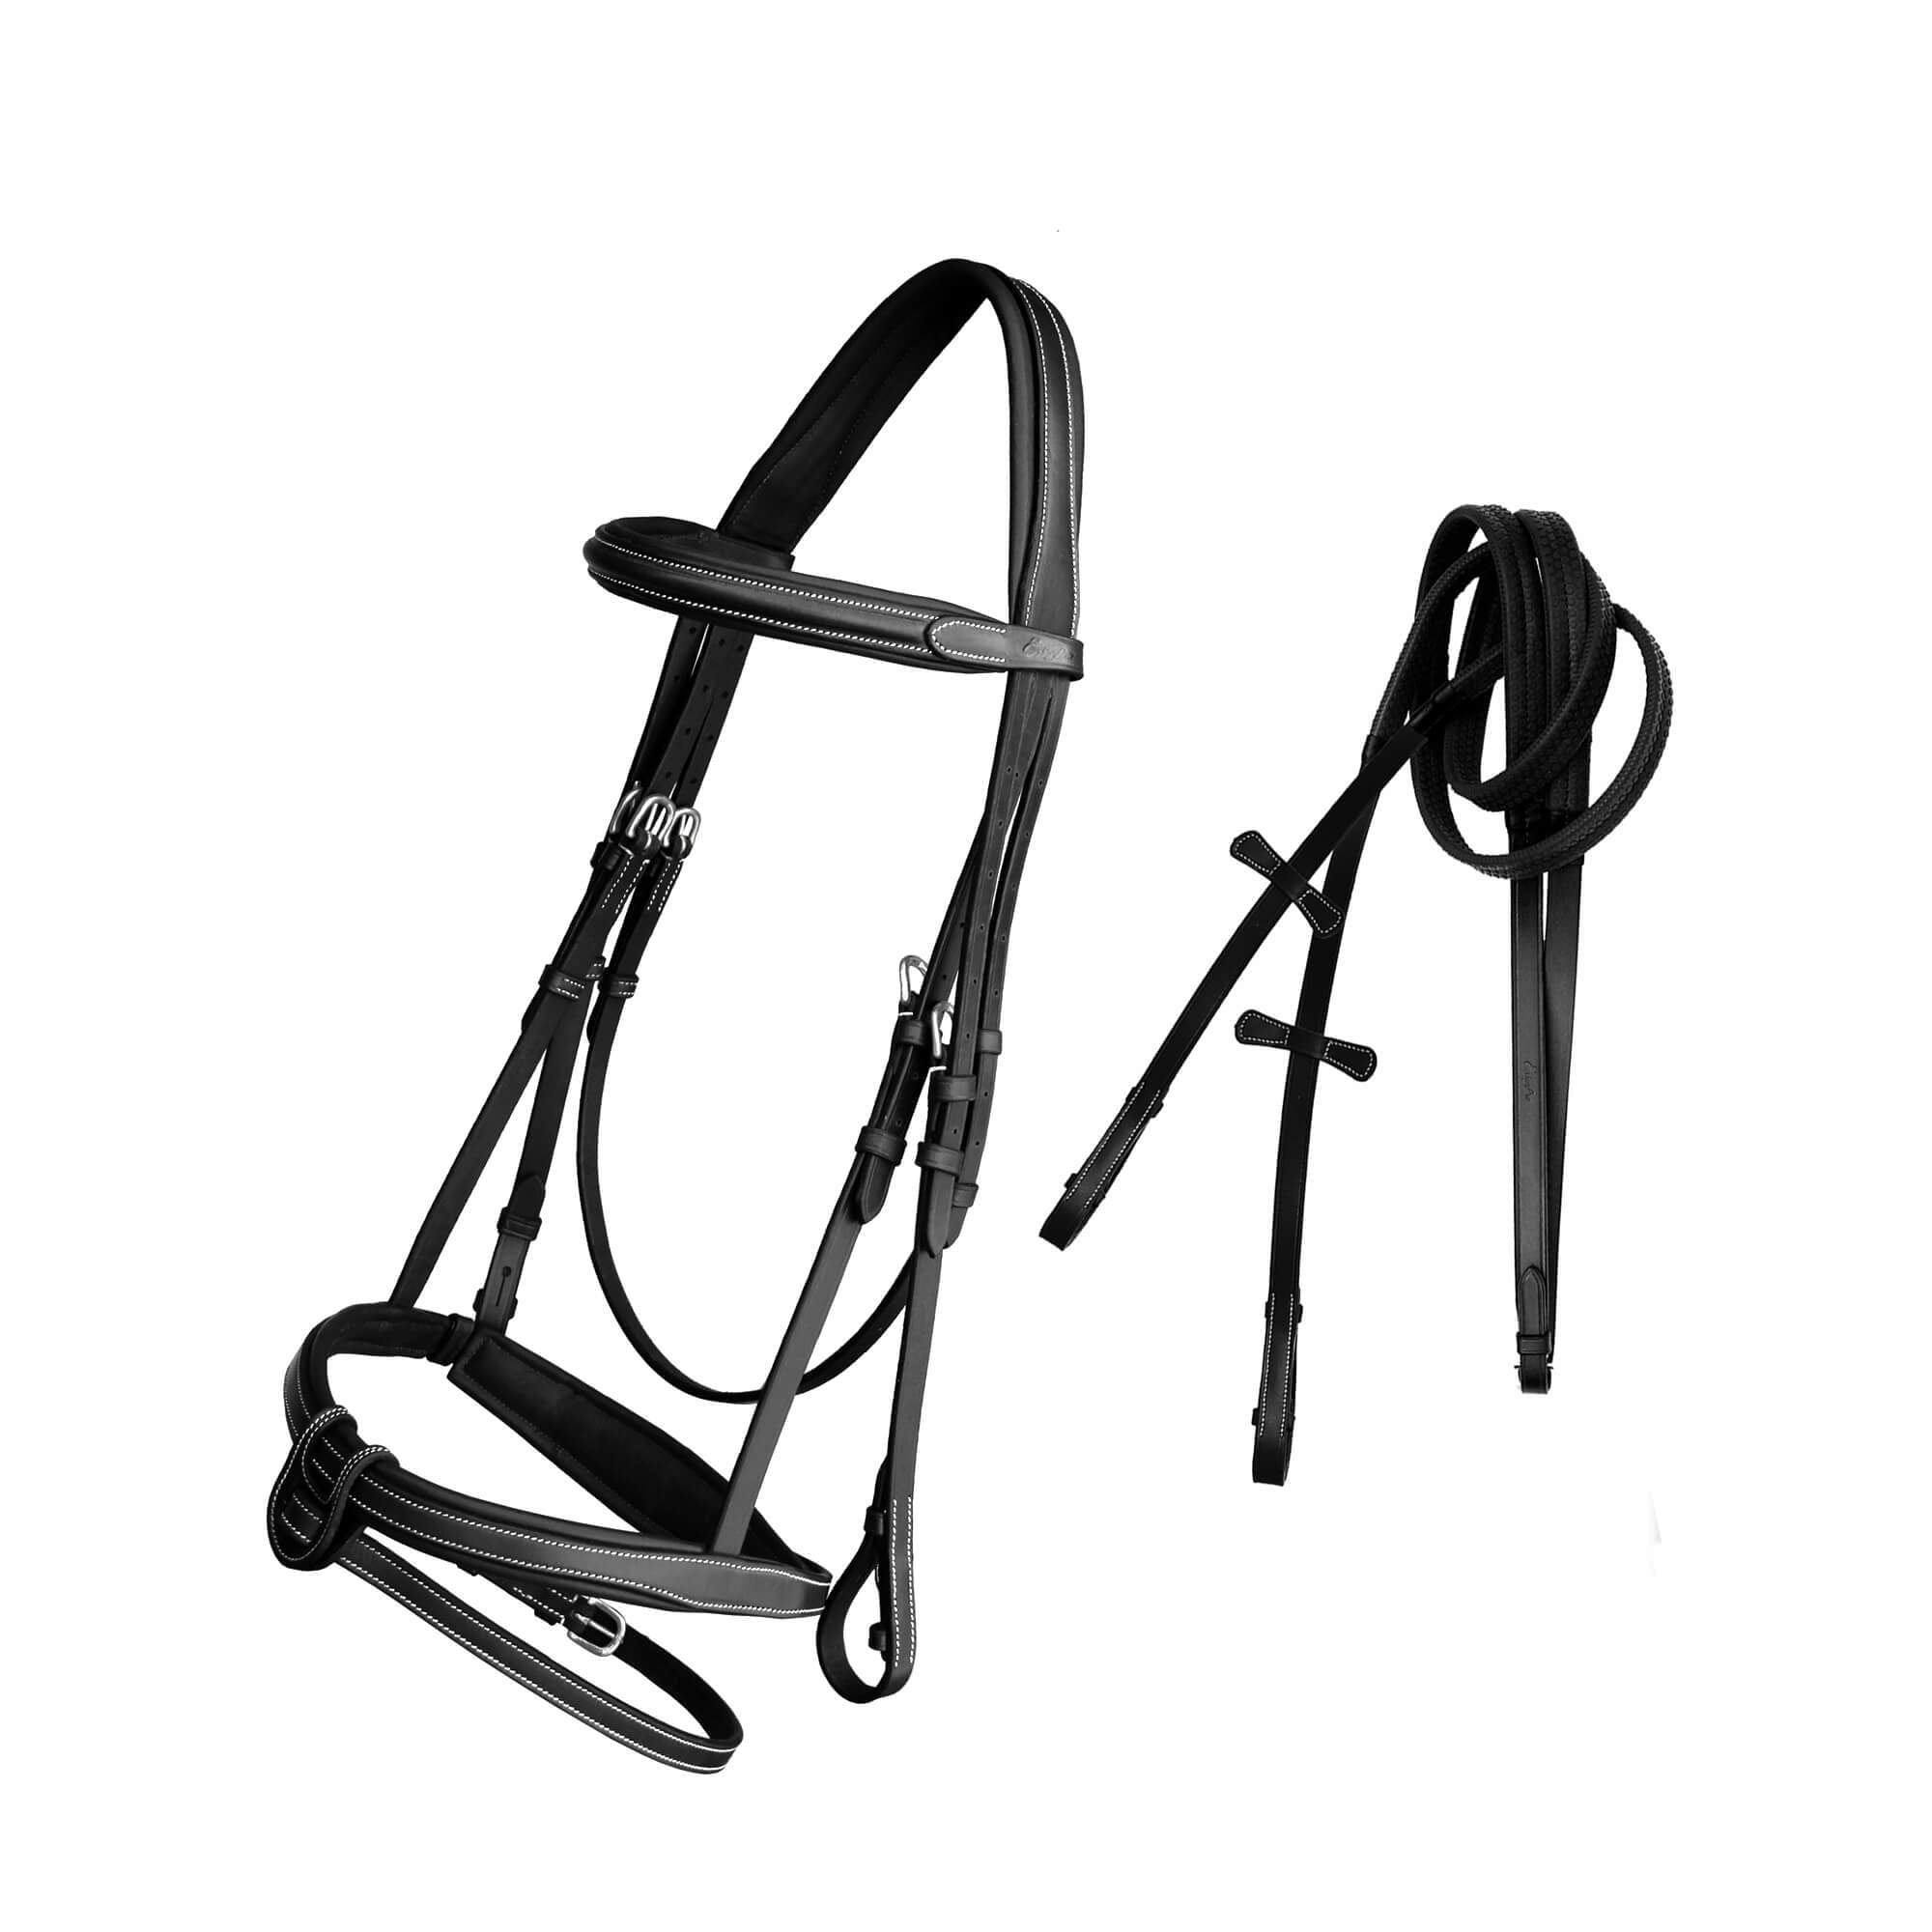 English Bridles-ExionPro Full Padded Snaffle Bridle with U Shape Detachable Flash & Reins-Bridles and Reins